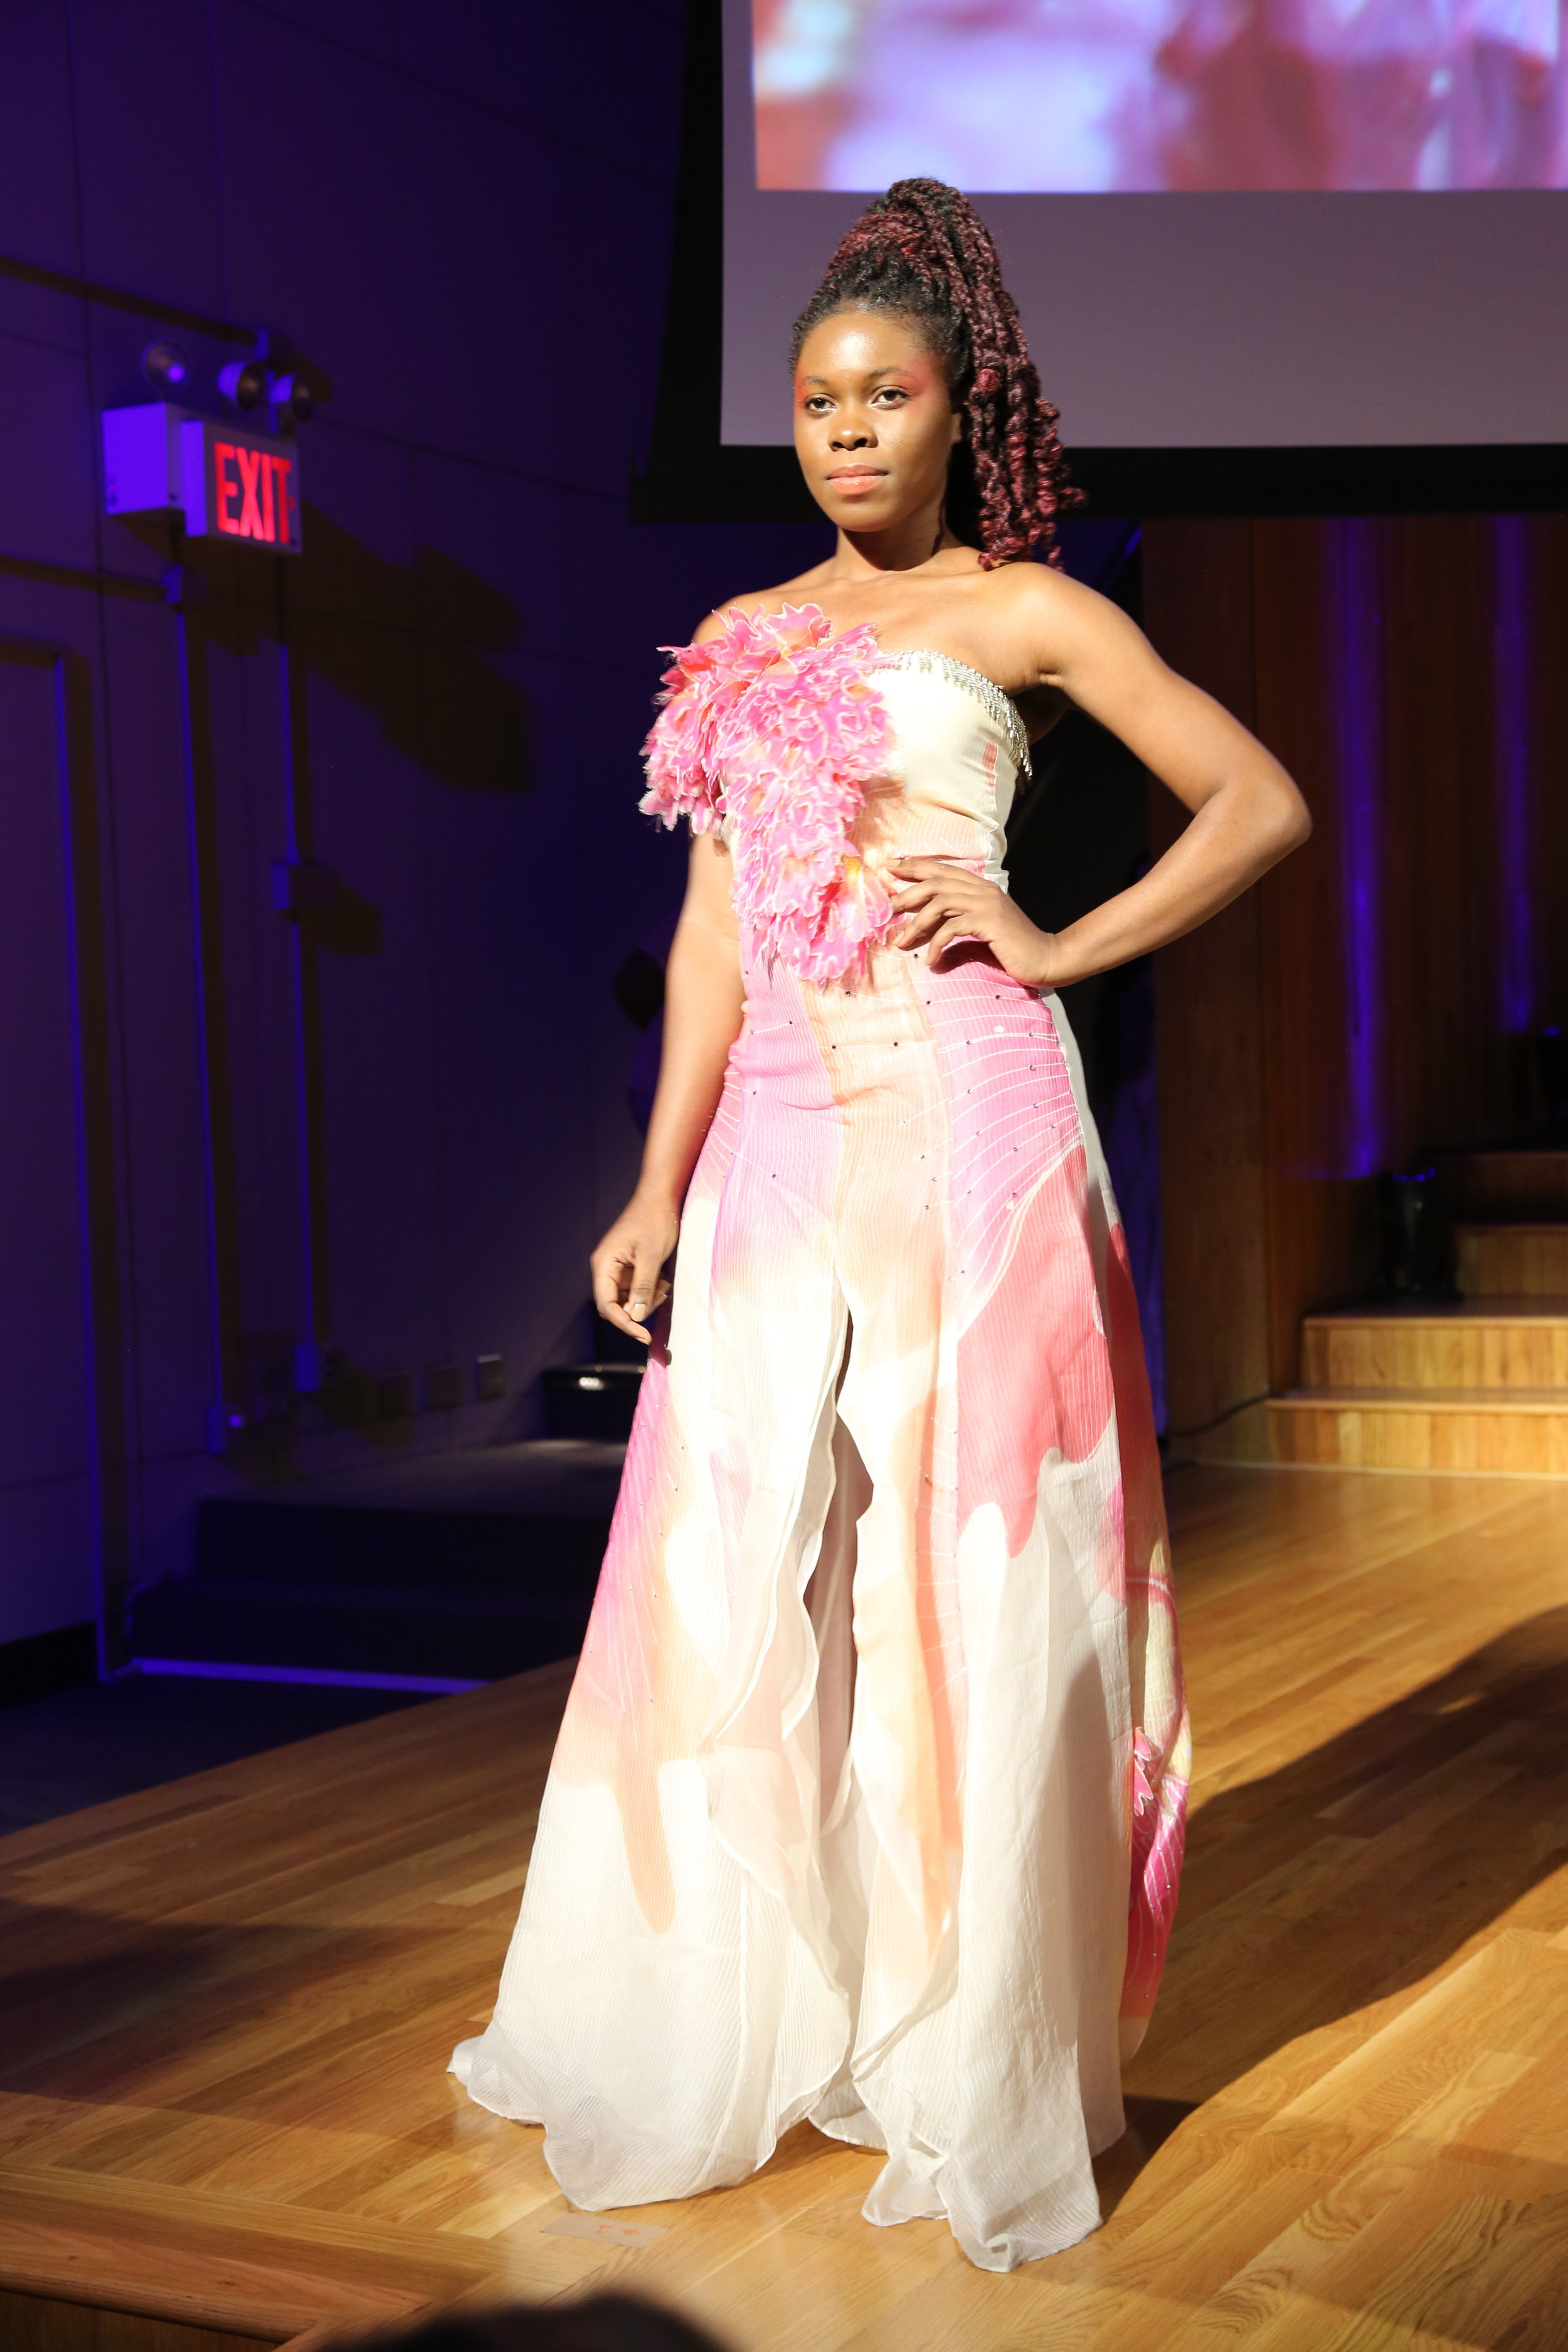 Outfit from Heather Jones, of Trinidad and Tobago